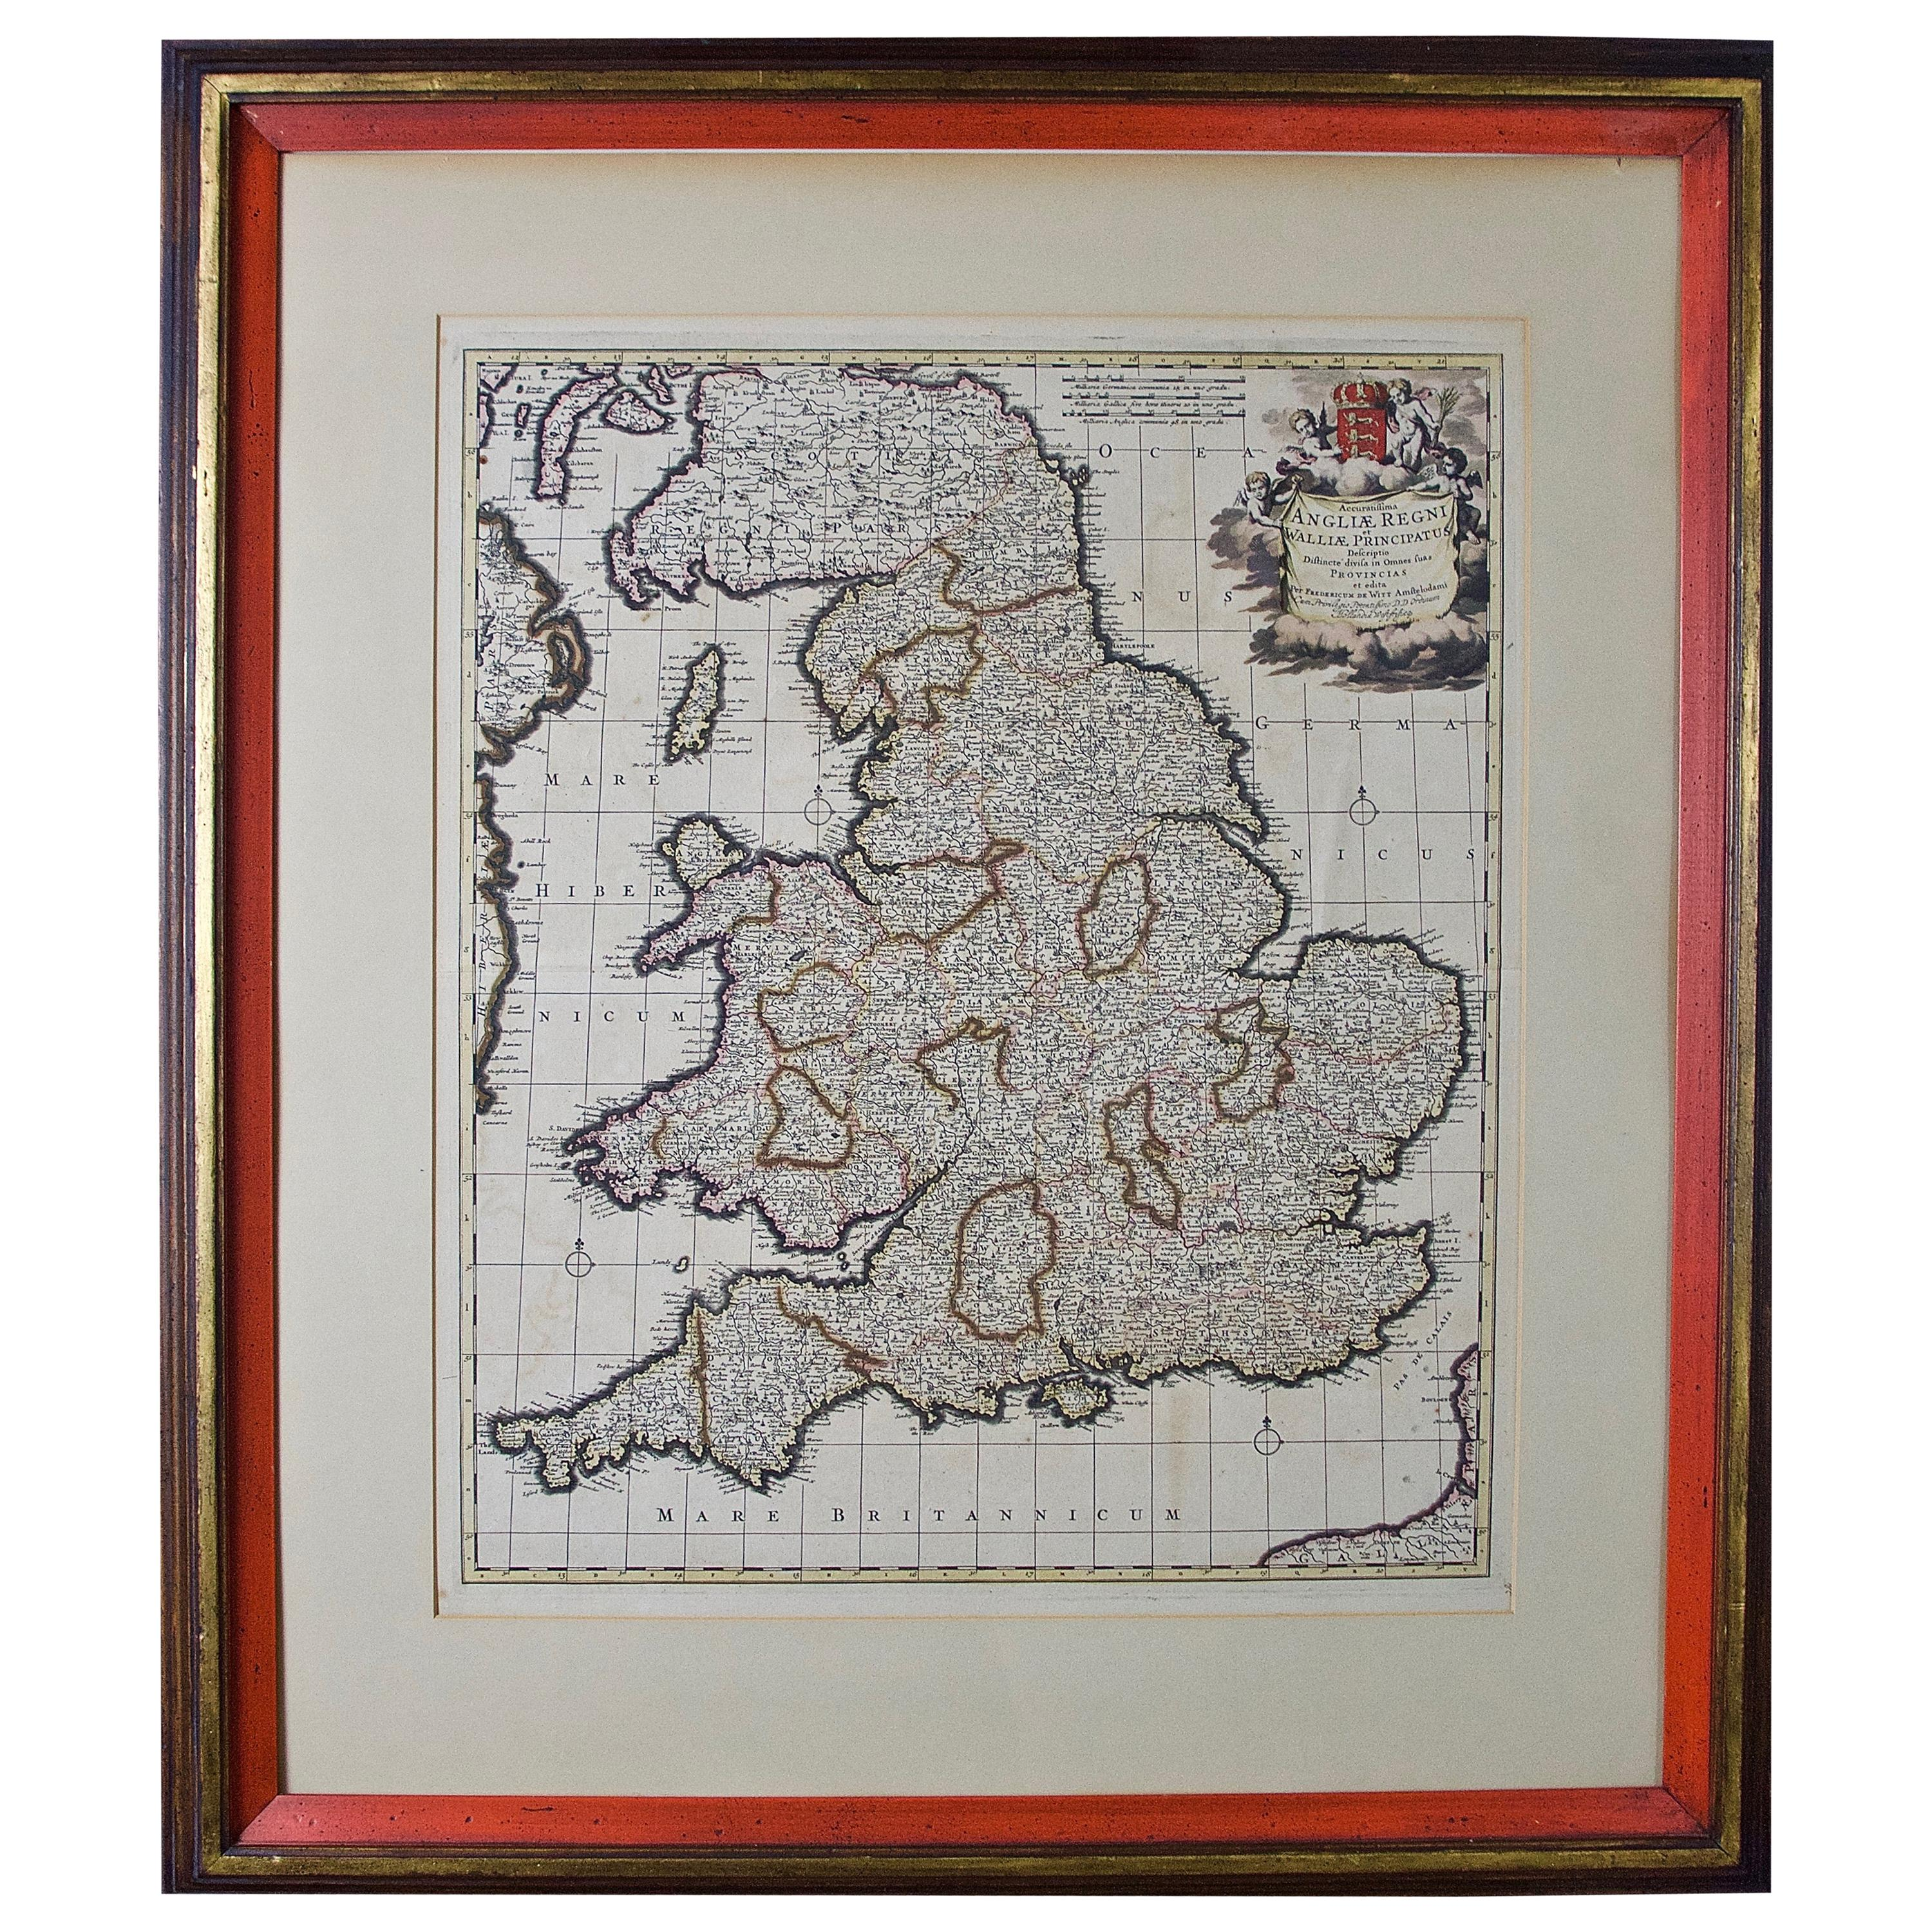 Large 17th Century Hand Colored Map of England and the British Isles by de Wit